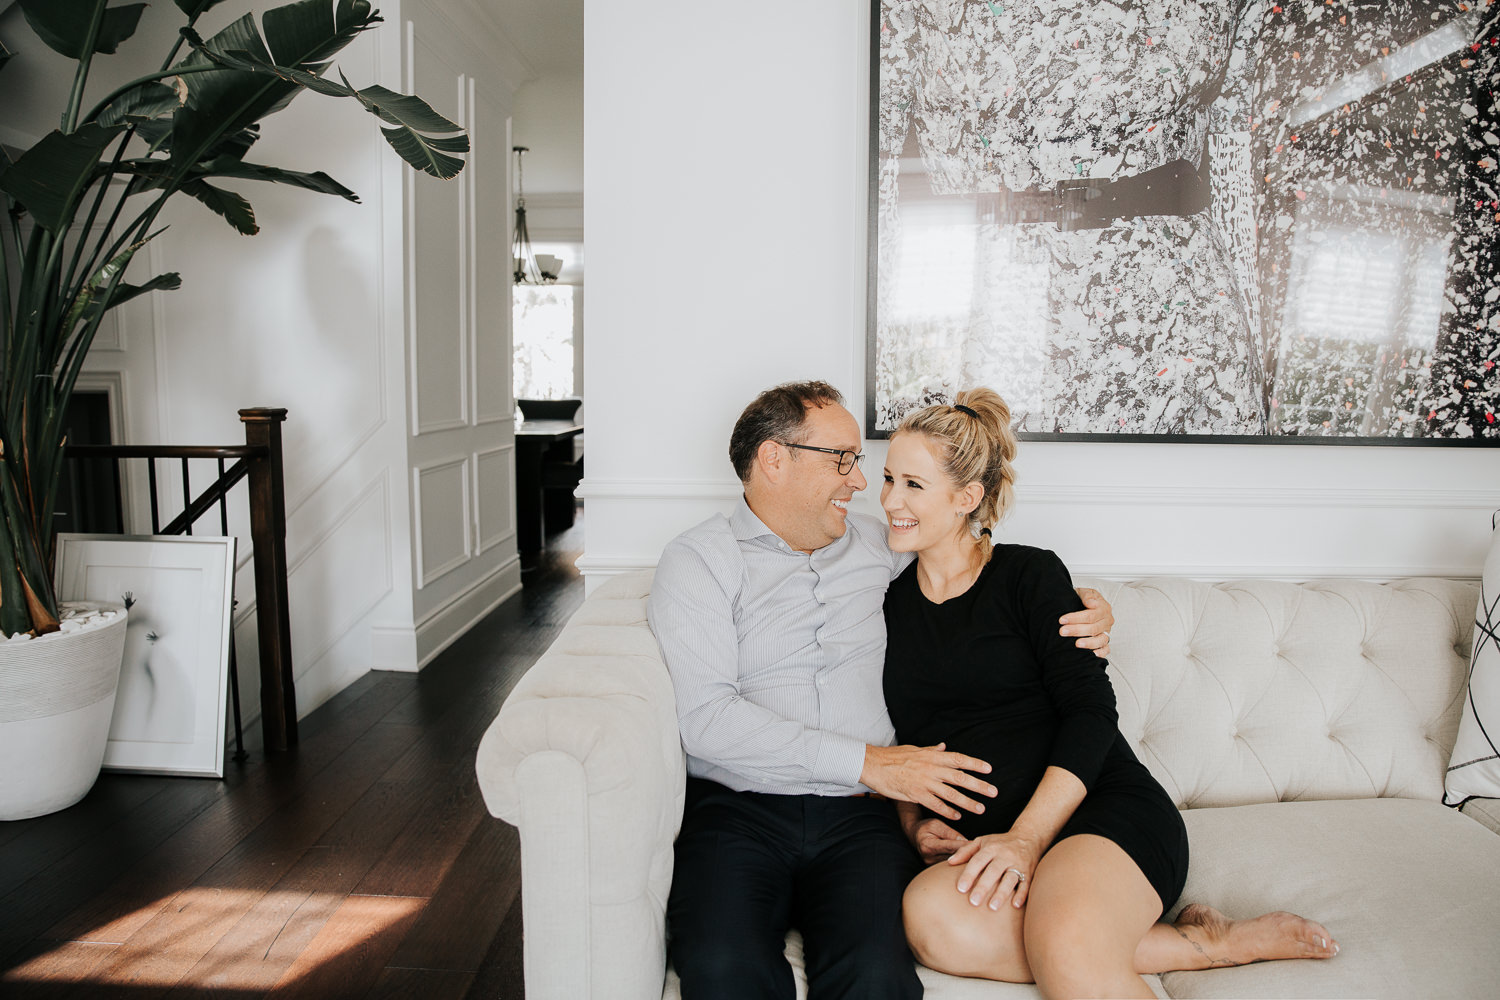 couple sitting together on couch smiling at one another, husband's hand on pregnant wife's belly, woman wearing black dress and blonde hair in braid - Stouffville In-Home Photography